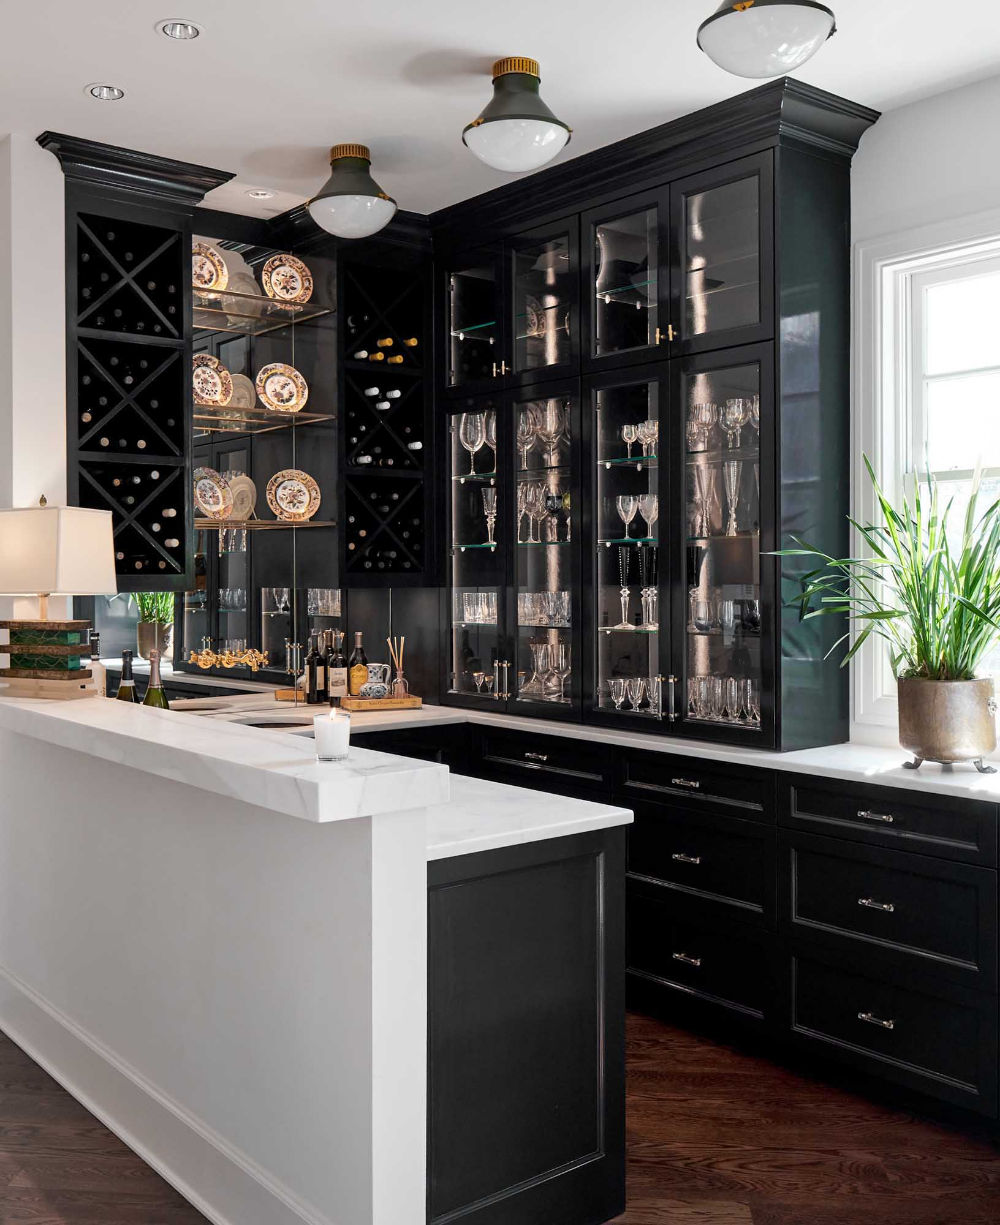 Black Lacquered Laundry Room Cabinetry Google Search In 2020 Home Bar Designs Black Cabinets Pantry Design